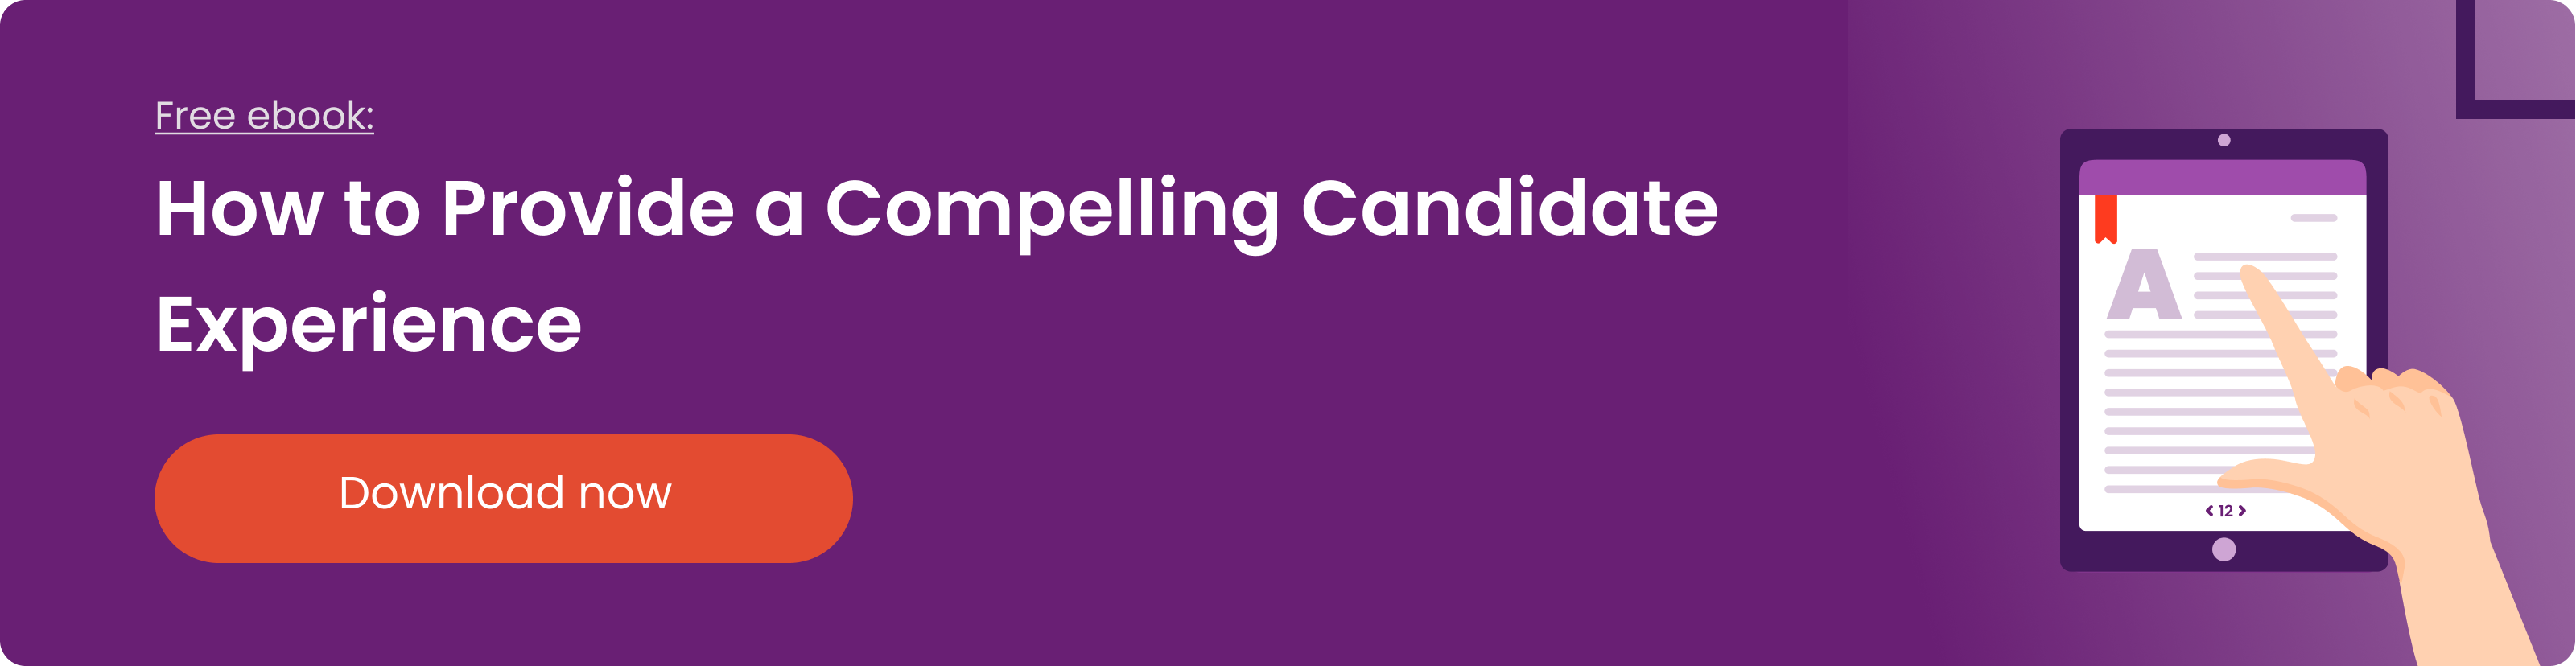 How to Provide a Compelling Candidate Experience